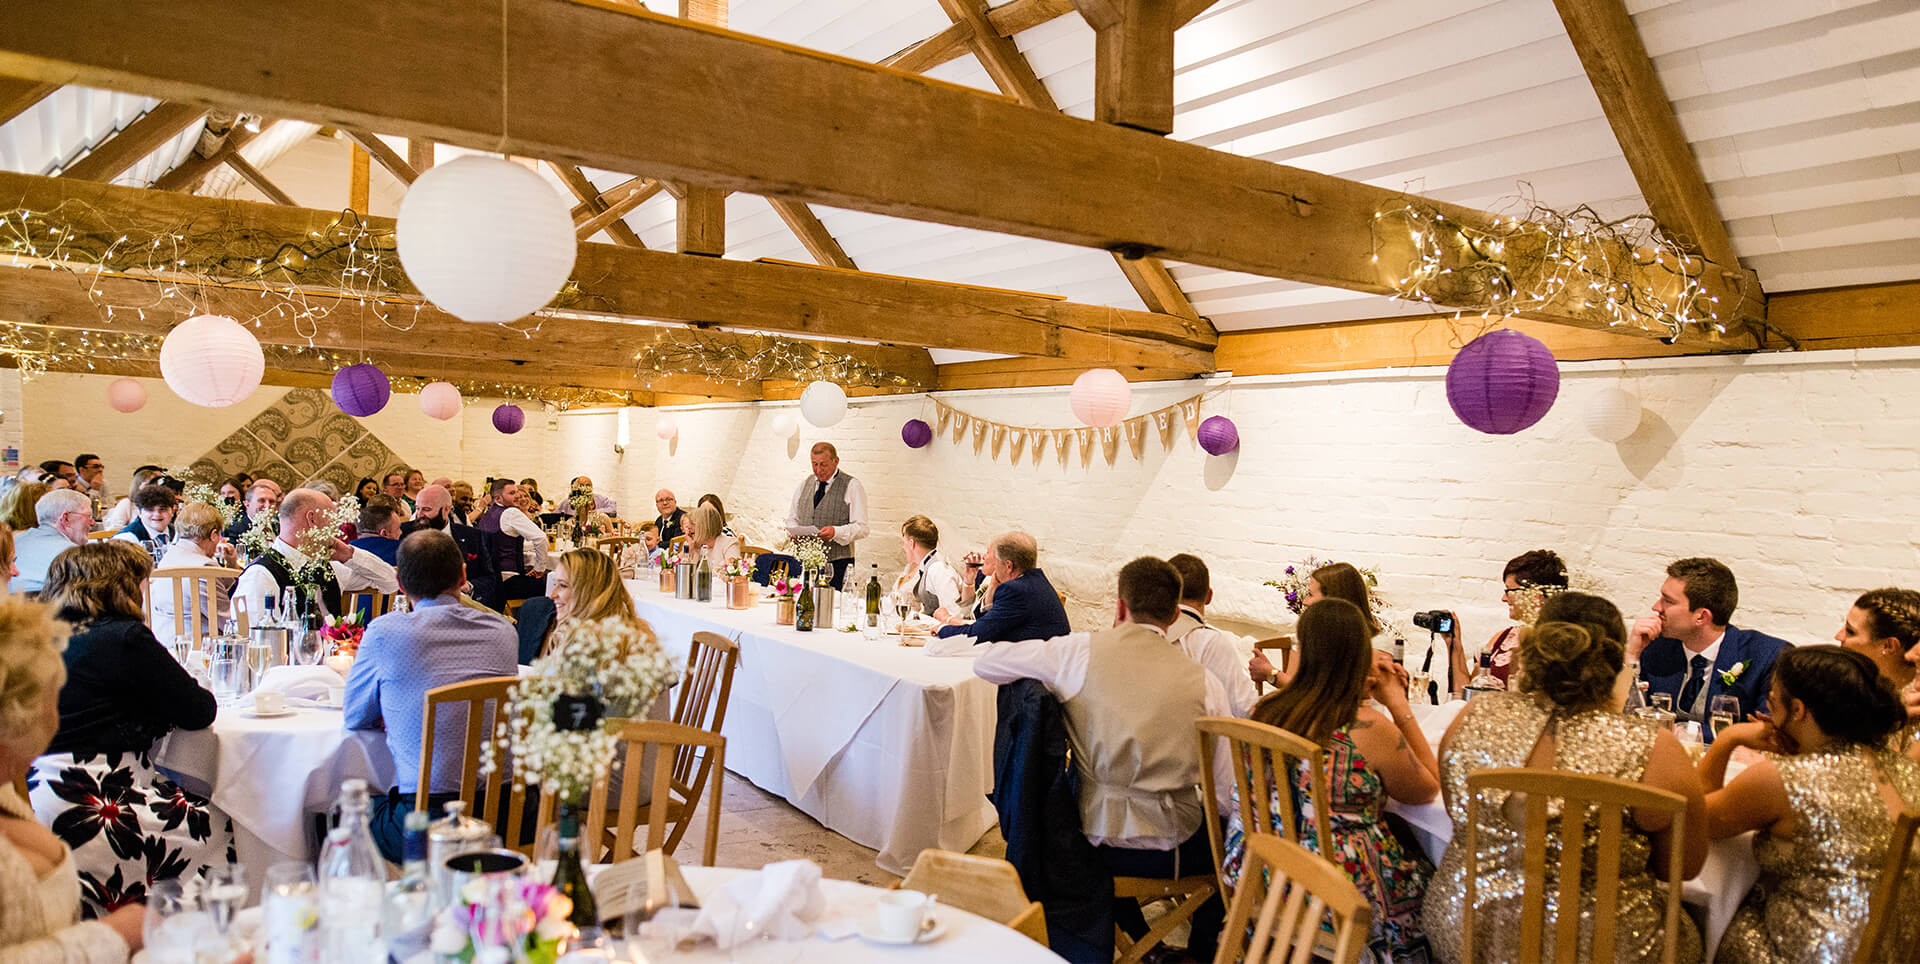 Guests sitting down to enjoy the father of the bride speech at this Worcestershire barn wedding venue